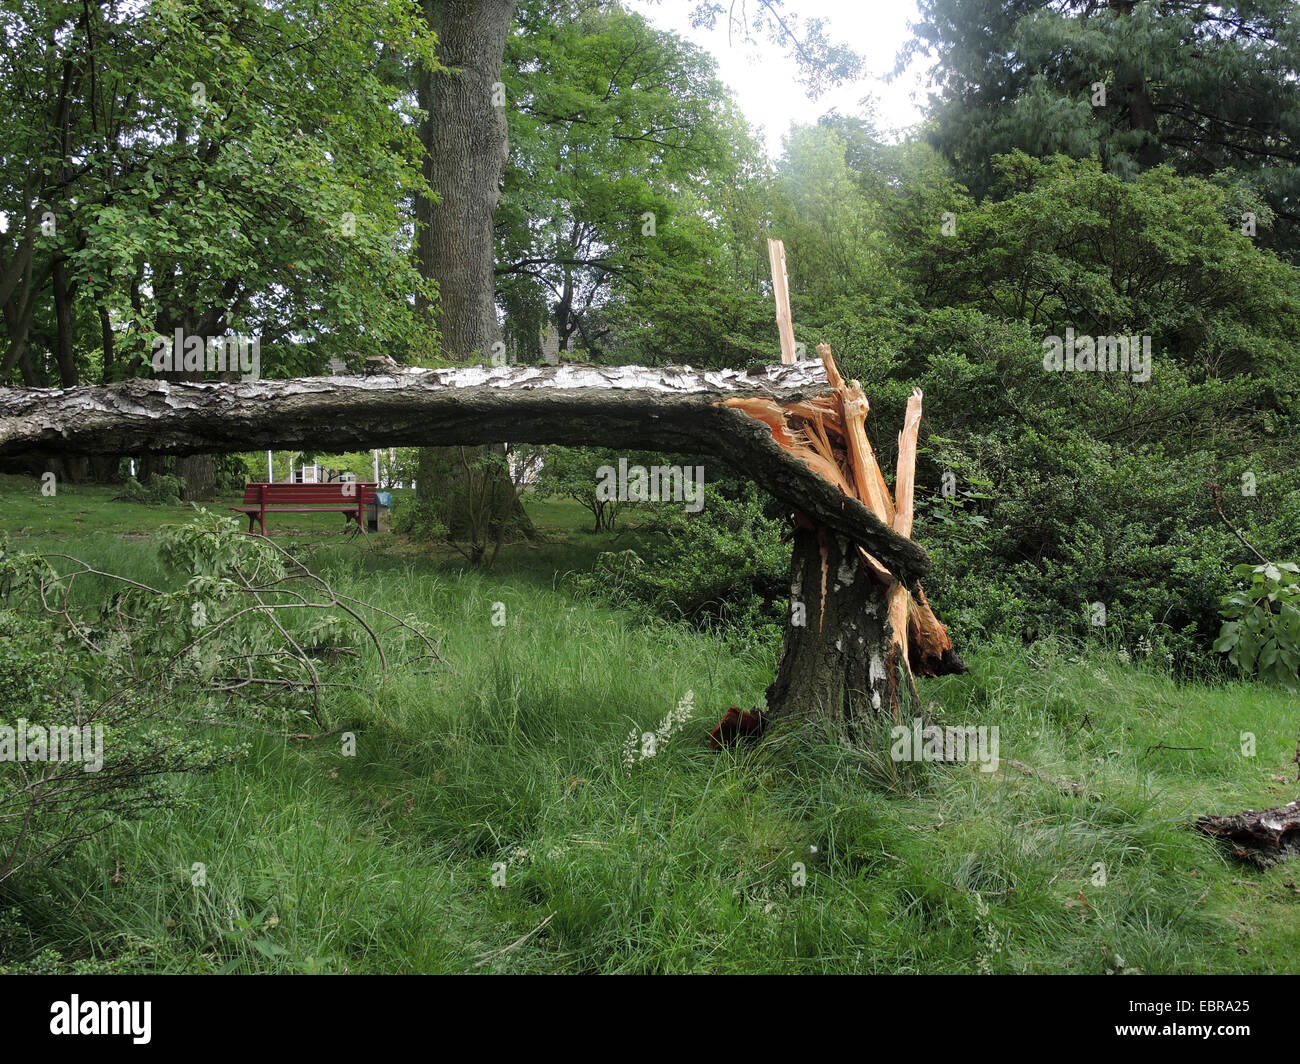 common birch, silver birch, European white birch, white birch (Betula pendula, Betula alba), ravaged city park of - Stock Image